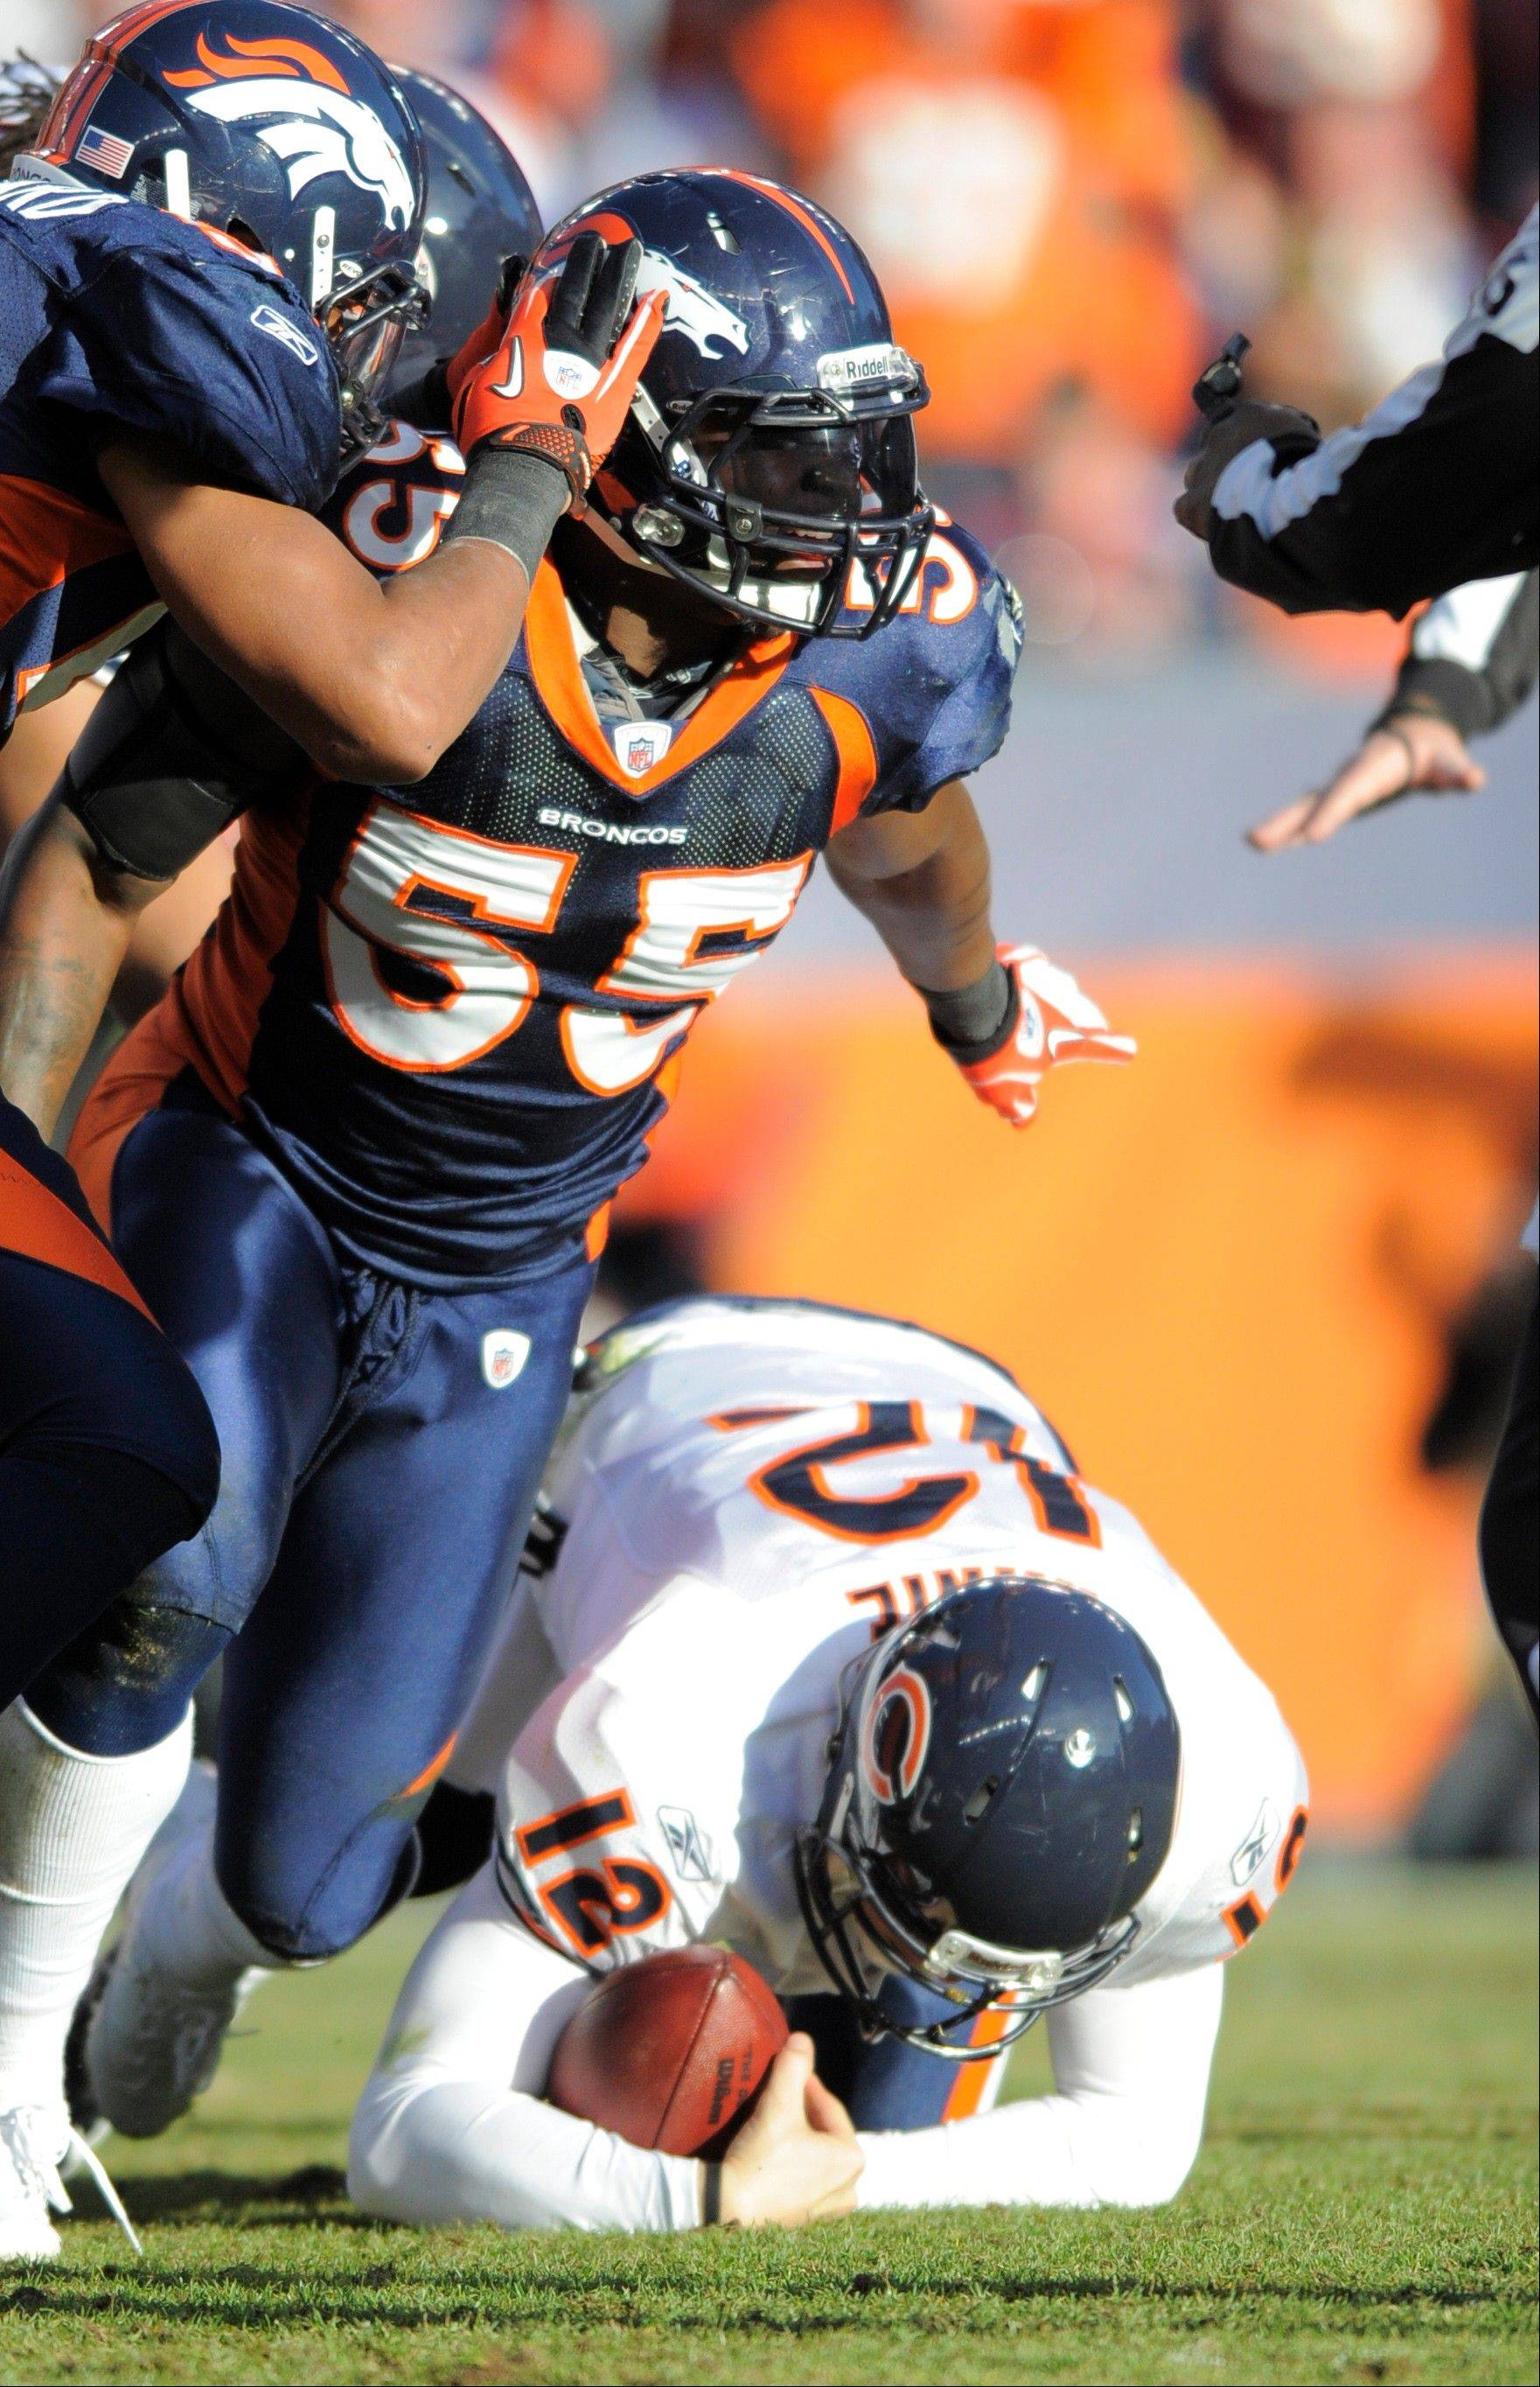 Denver Broncos linebacker D.J. Williams (55) celebrates after sacking Bears quarterback Caleb Hanie in their Dec. 11, 2011 contest at Soldier Field.